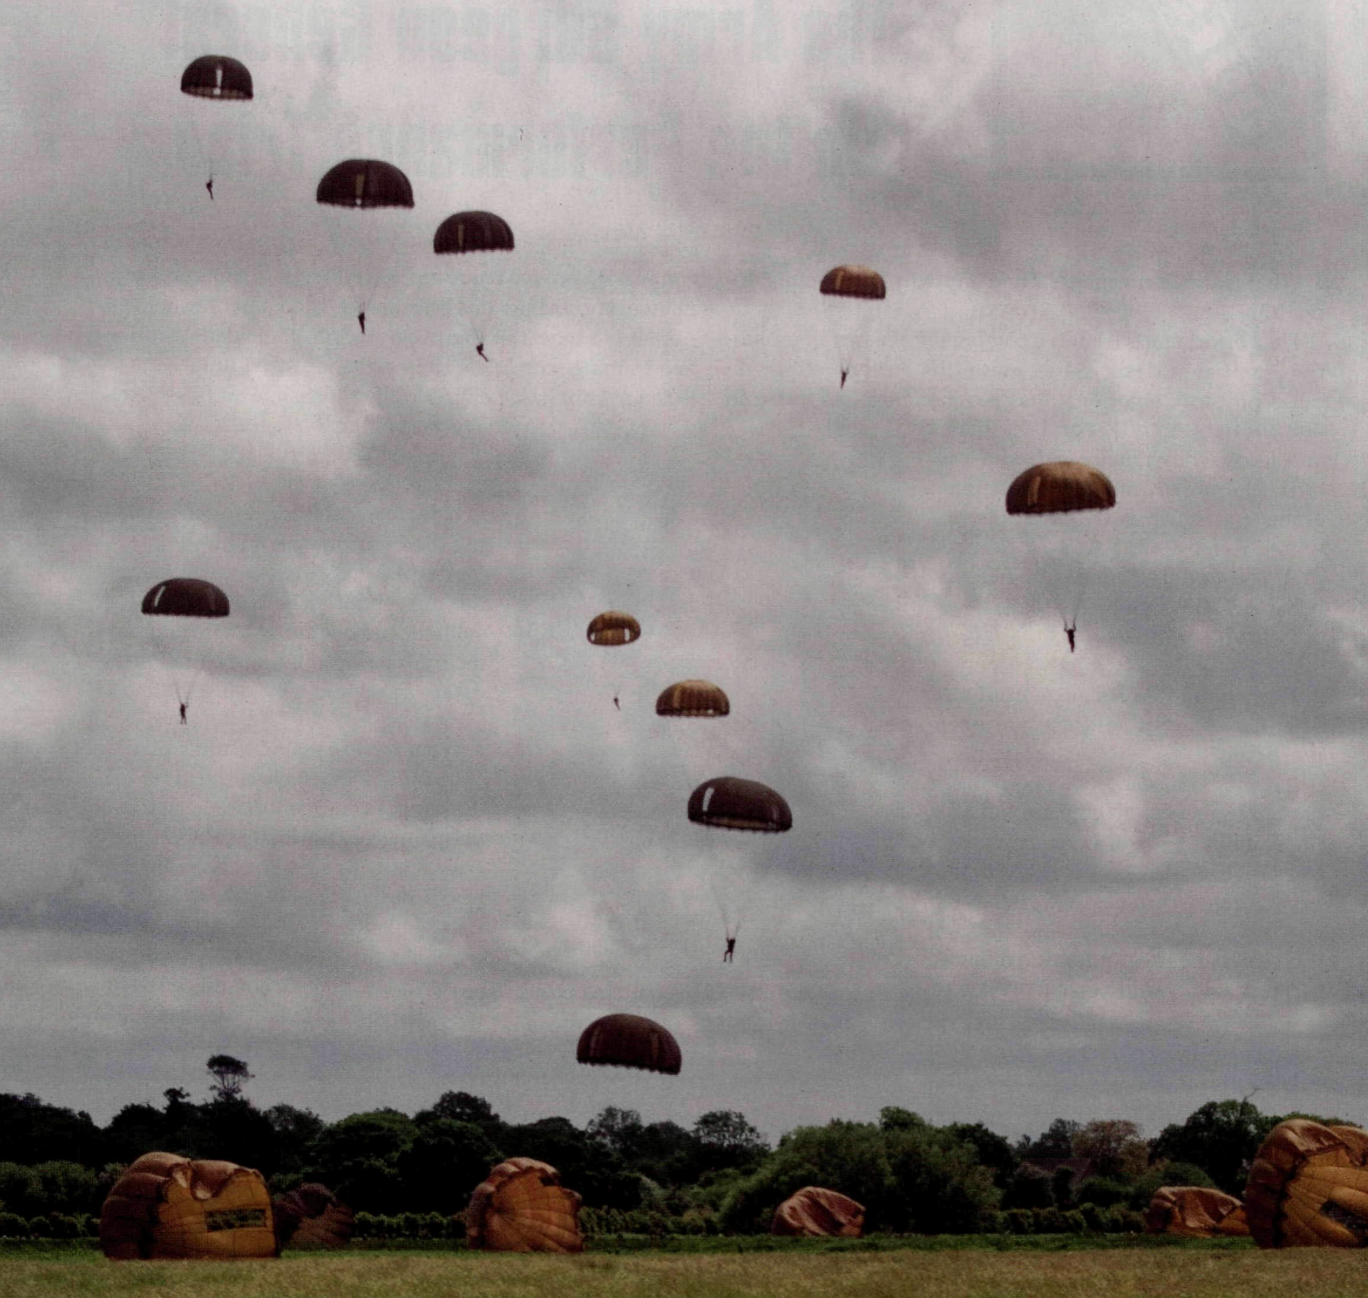 File:Daytime reenactment of the 82nd Air-borne Division's